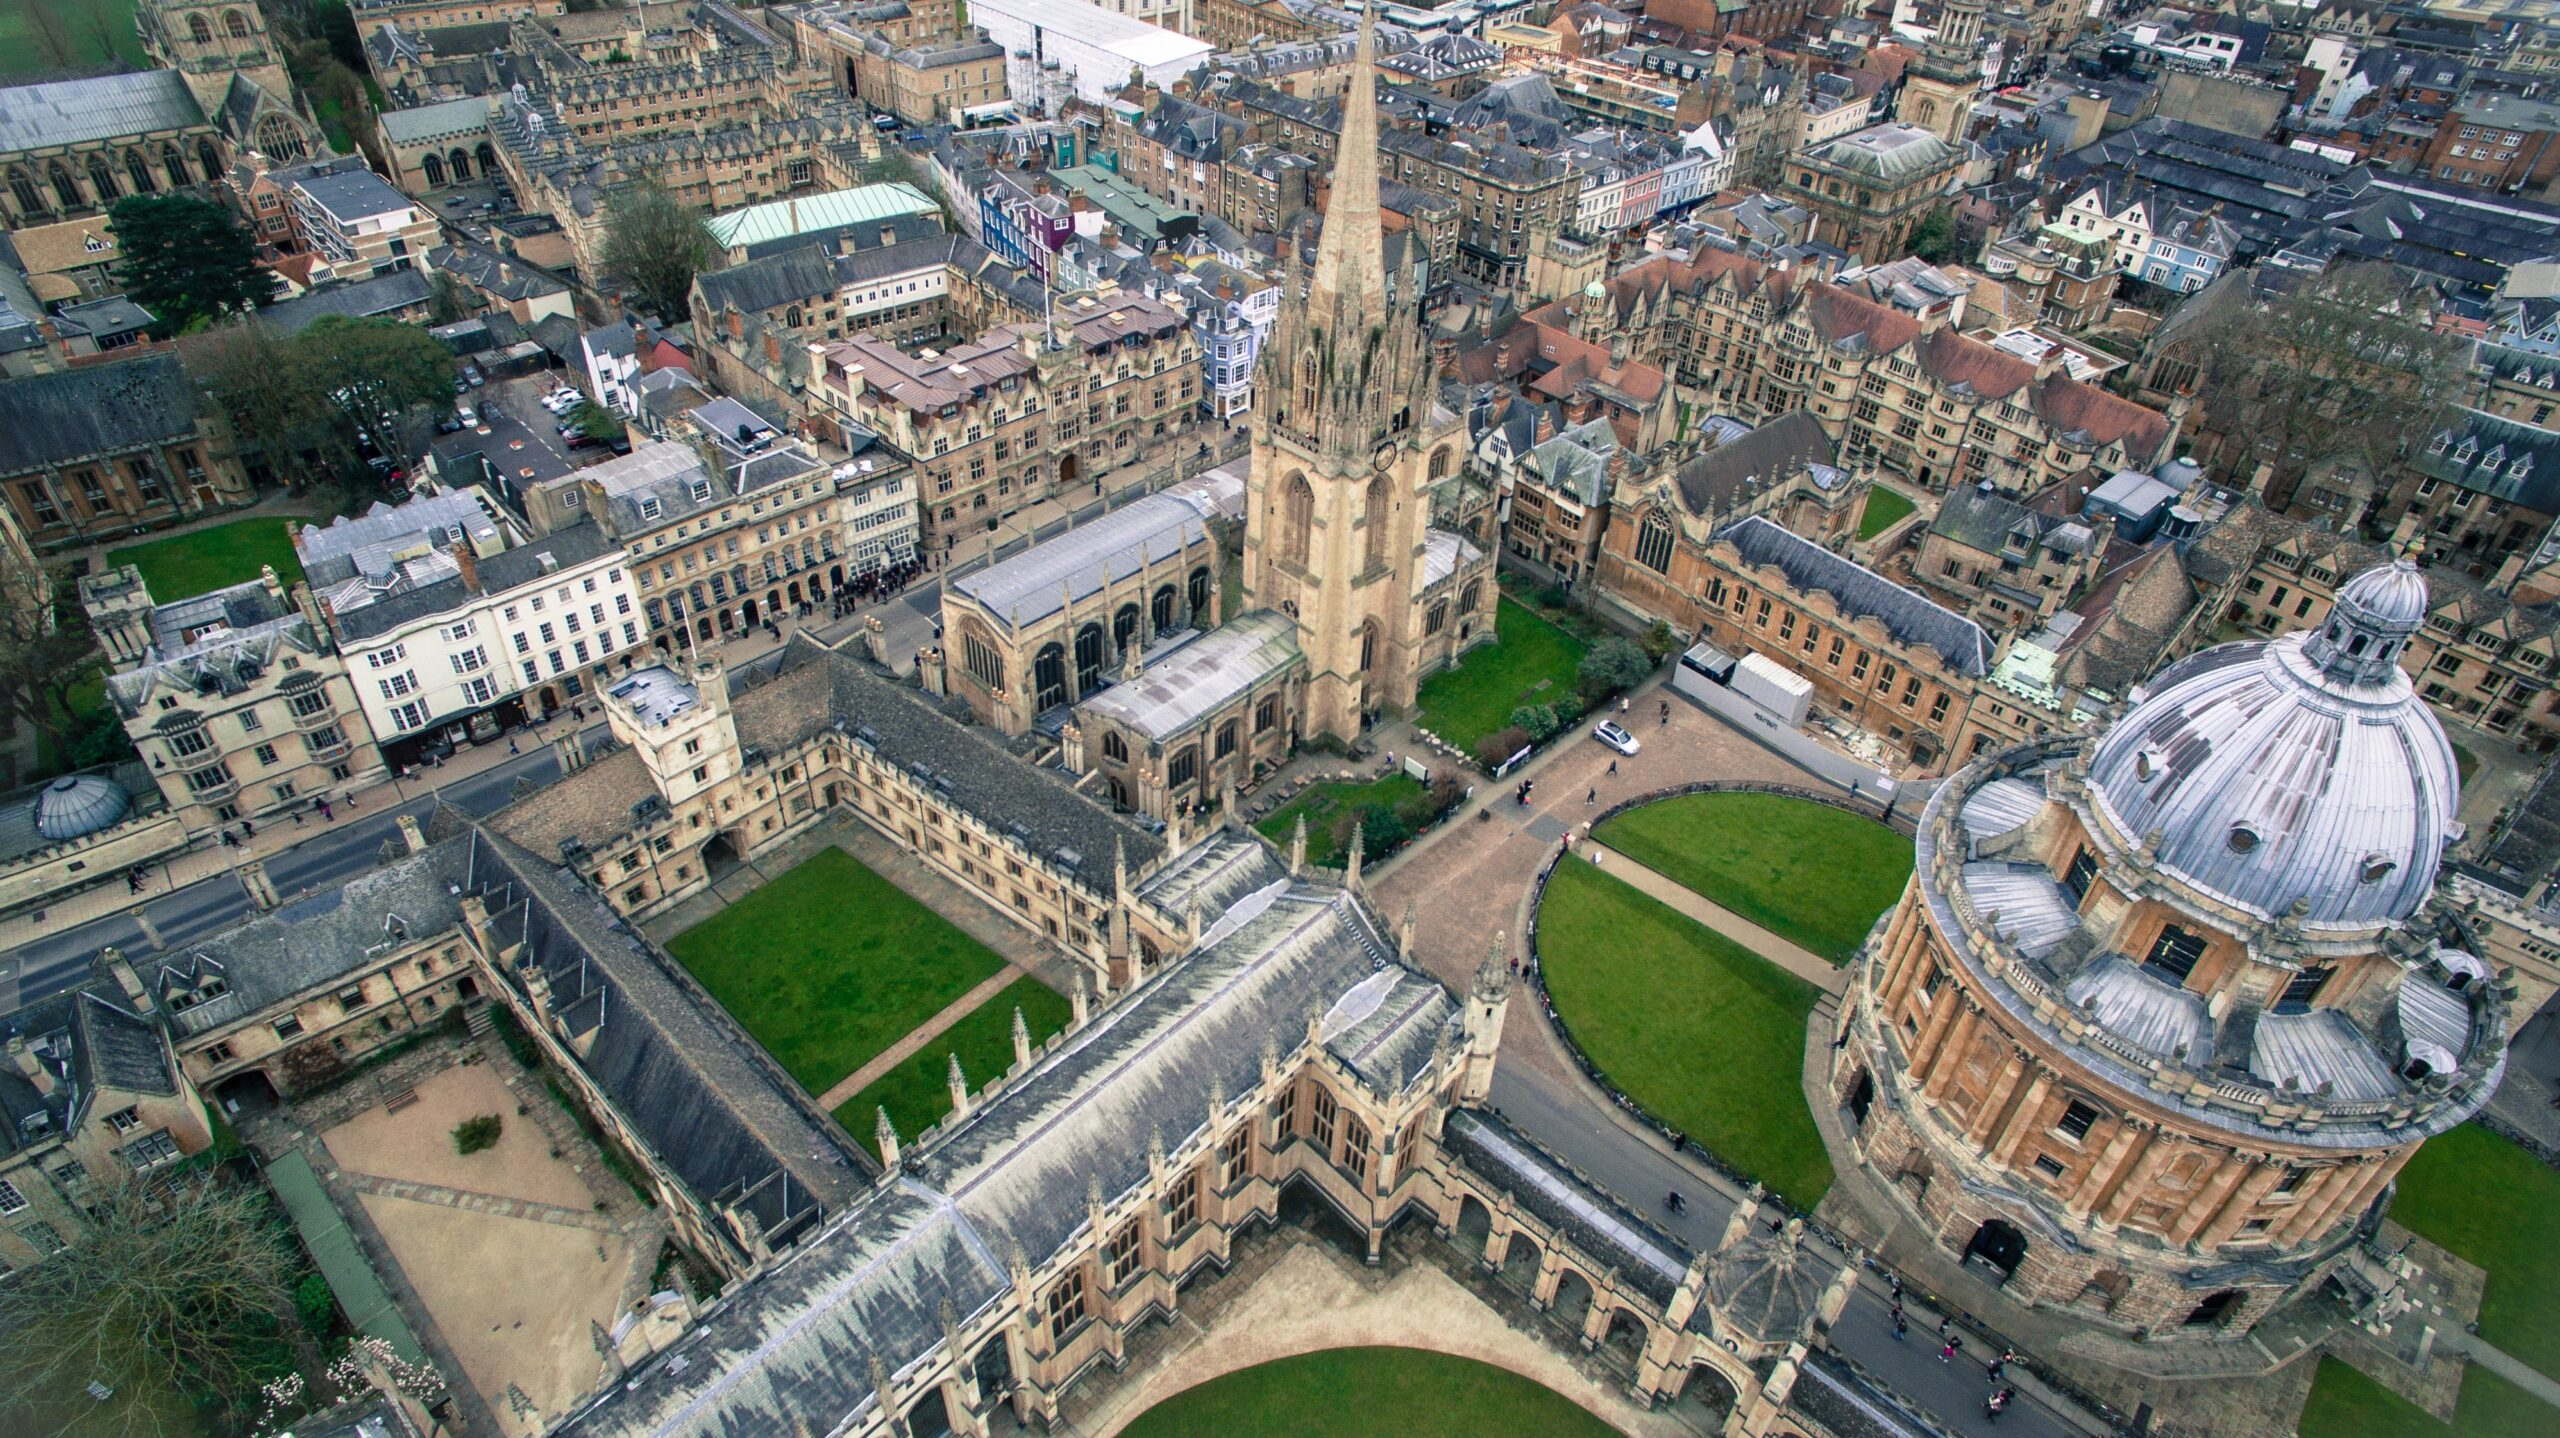 The City of Oxford from Above